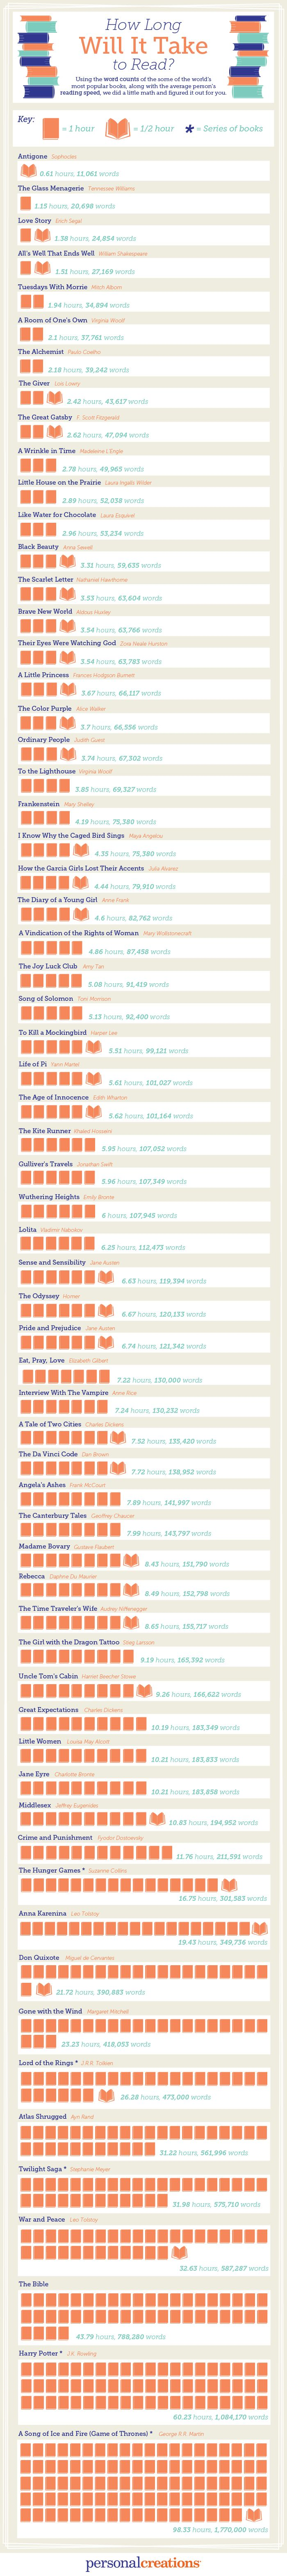 Infographic tells you how long it takes to read the world's best-loved - Books - Stylist Magazine